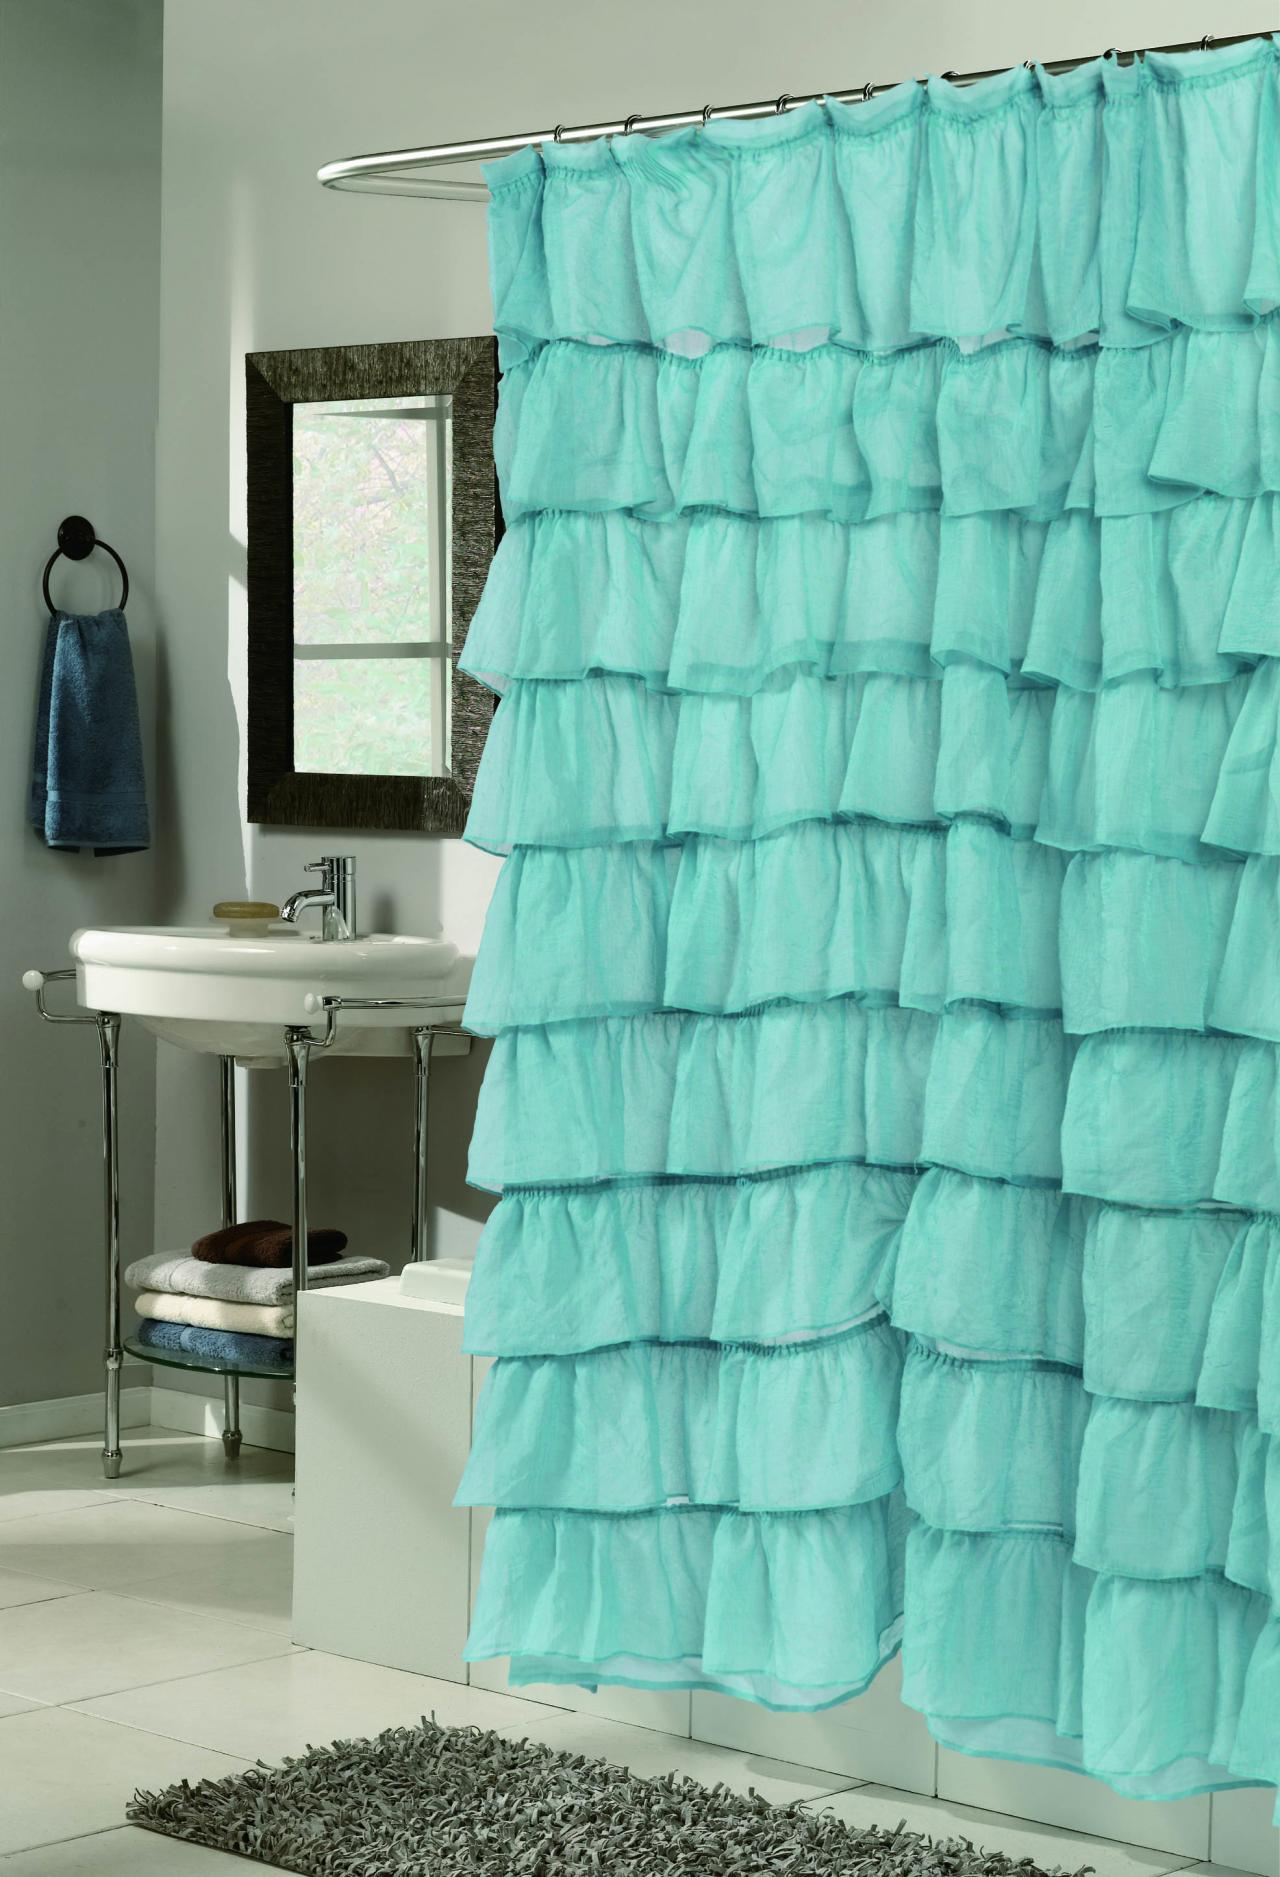 Blue bathroom curtains - Royal Blue Shower Curtains And Bathroom Sets Cynthia Rowley Shower Curtain Blue Black And Blue